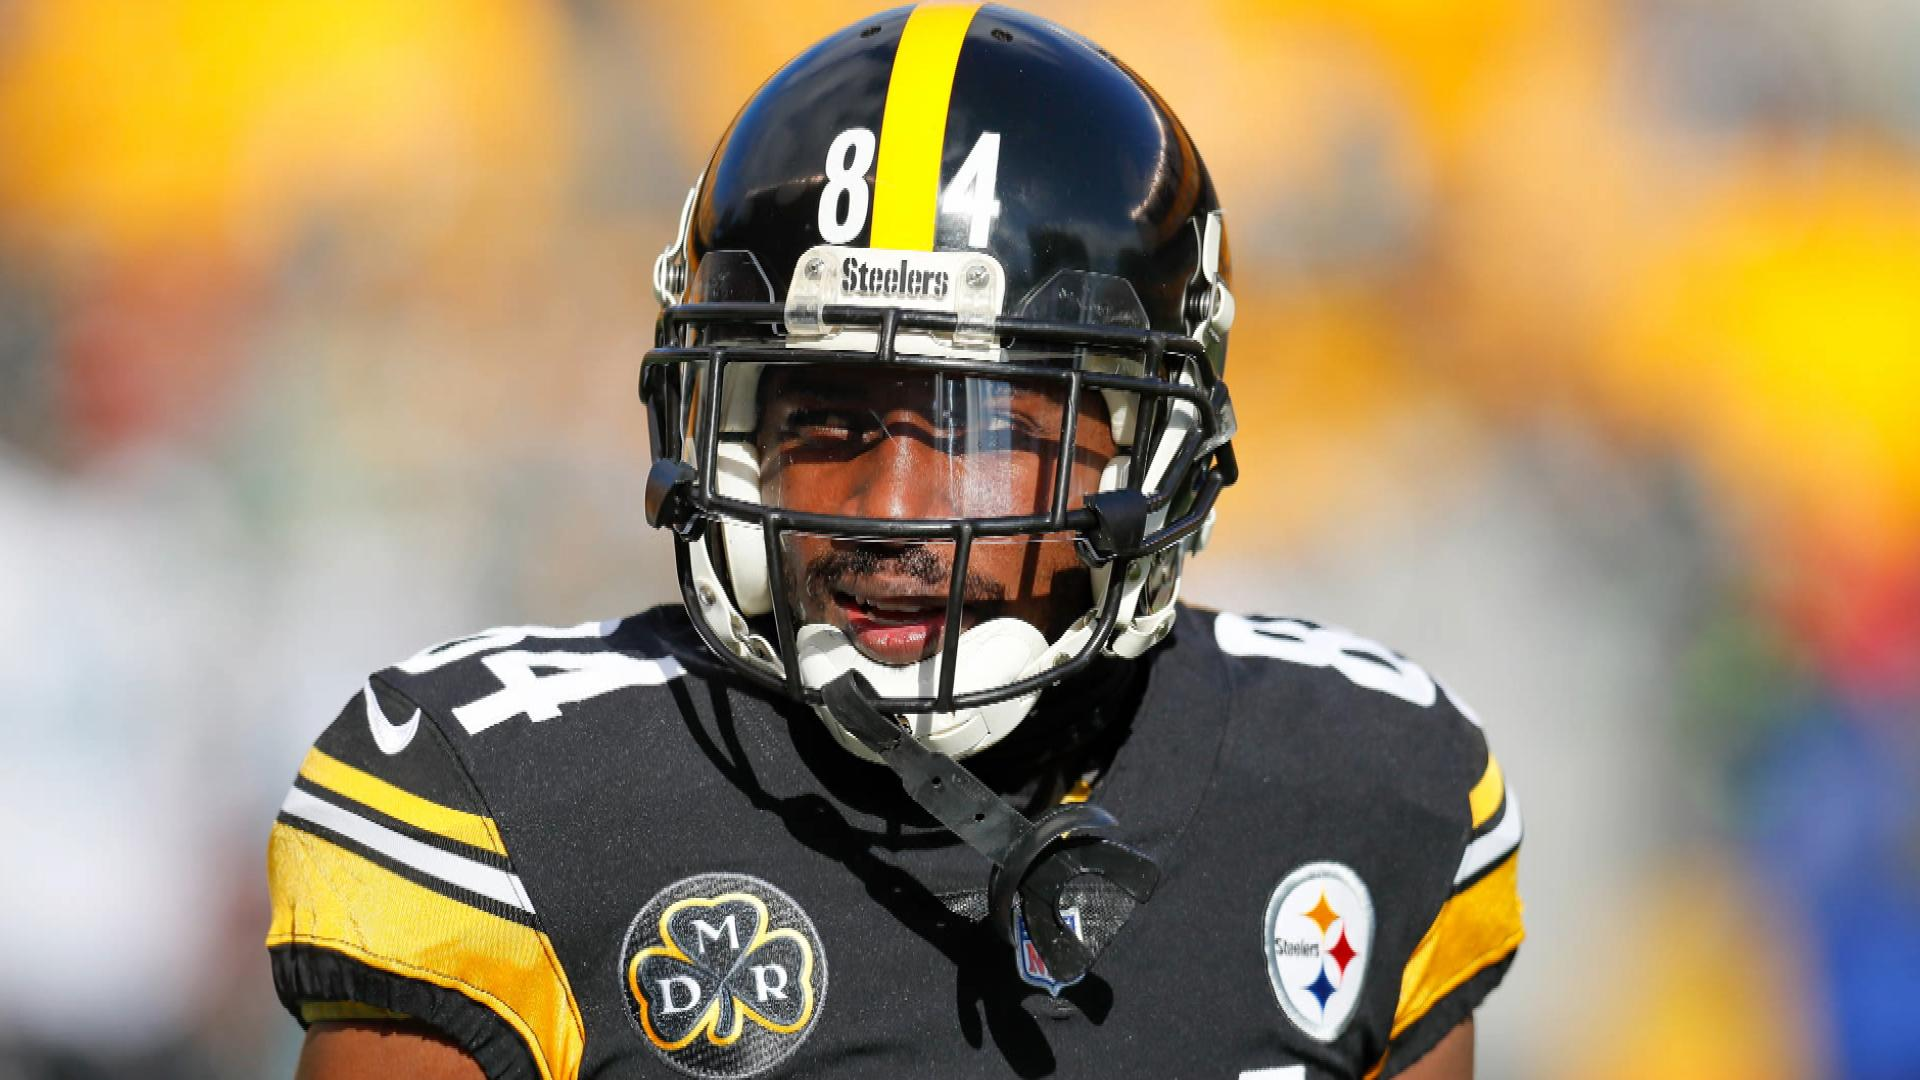 1e684ee7a18 Steelers' Antonio Brown, Broncos' Emmanuel Sanders beef on Twitter | NBC  Sports